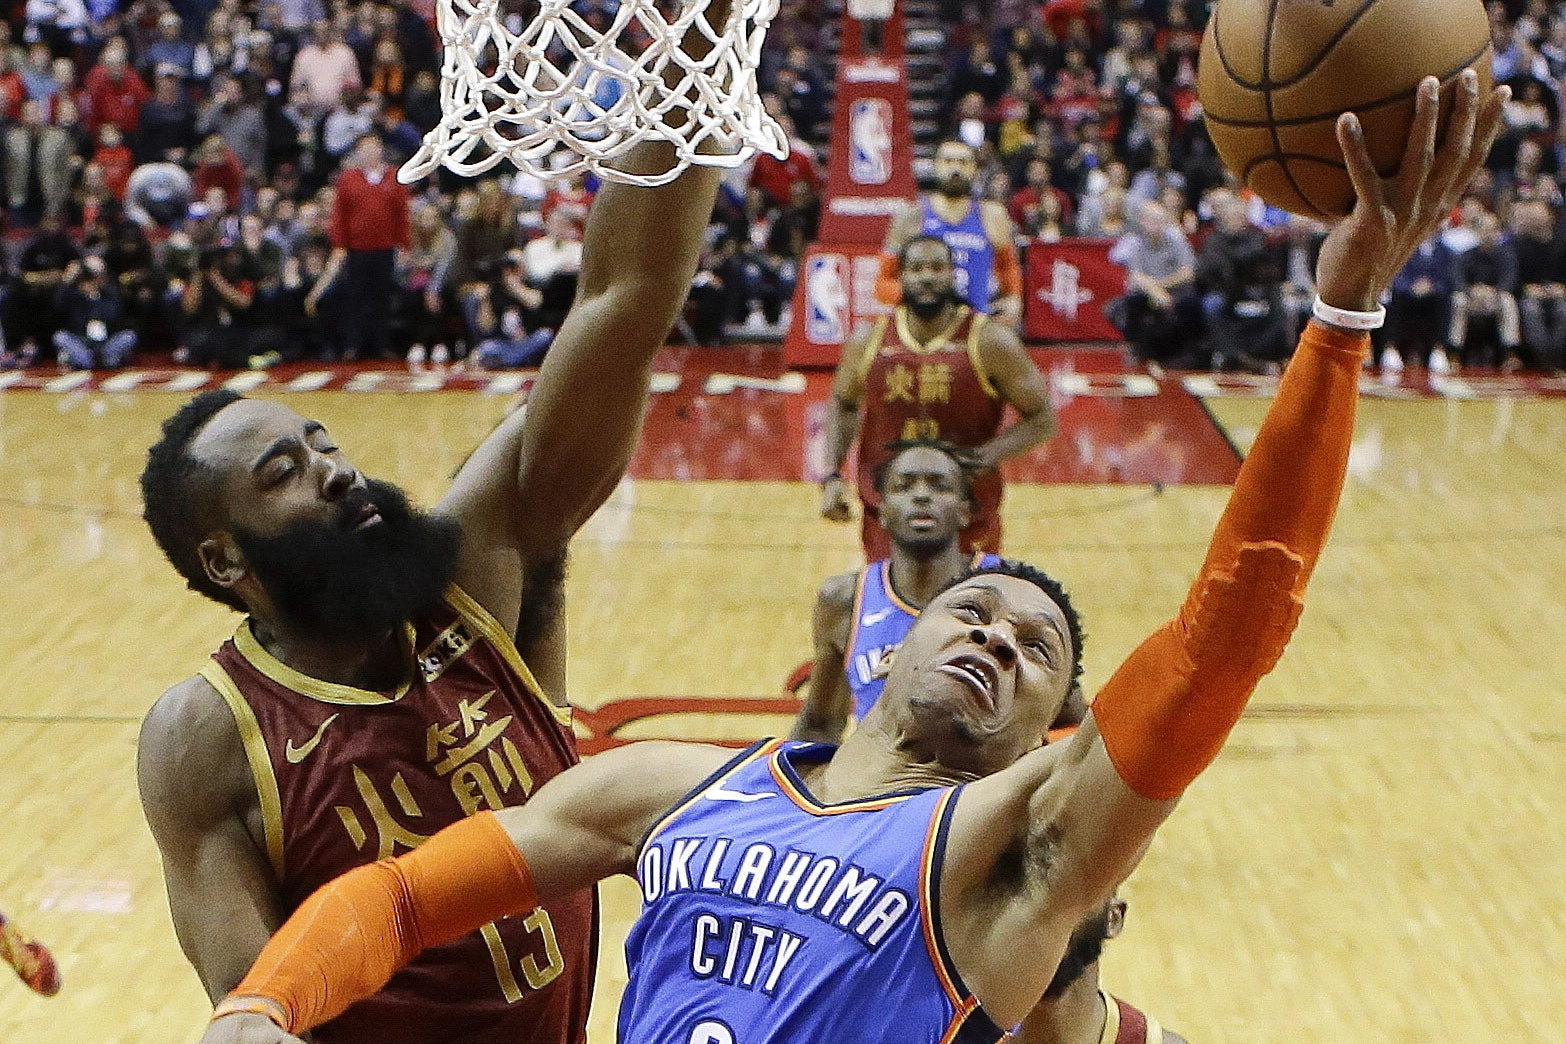 Oklahoma City Thunder guard Russell Westbrook claimed his ninth straight triple-double